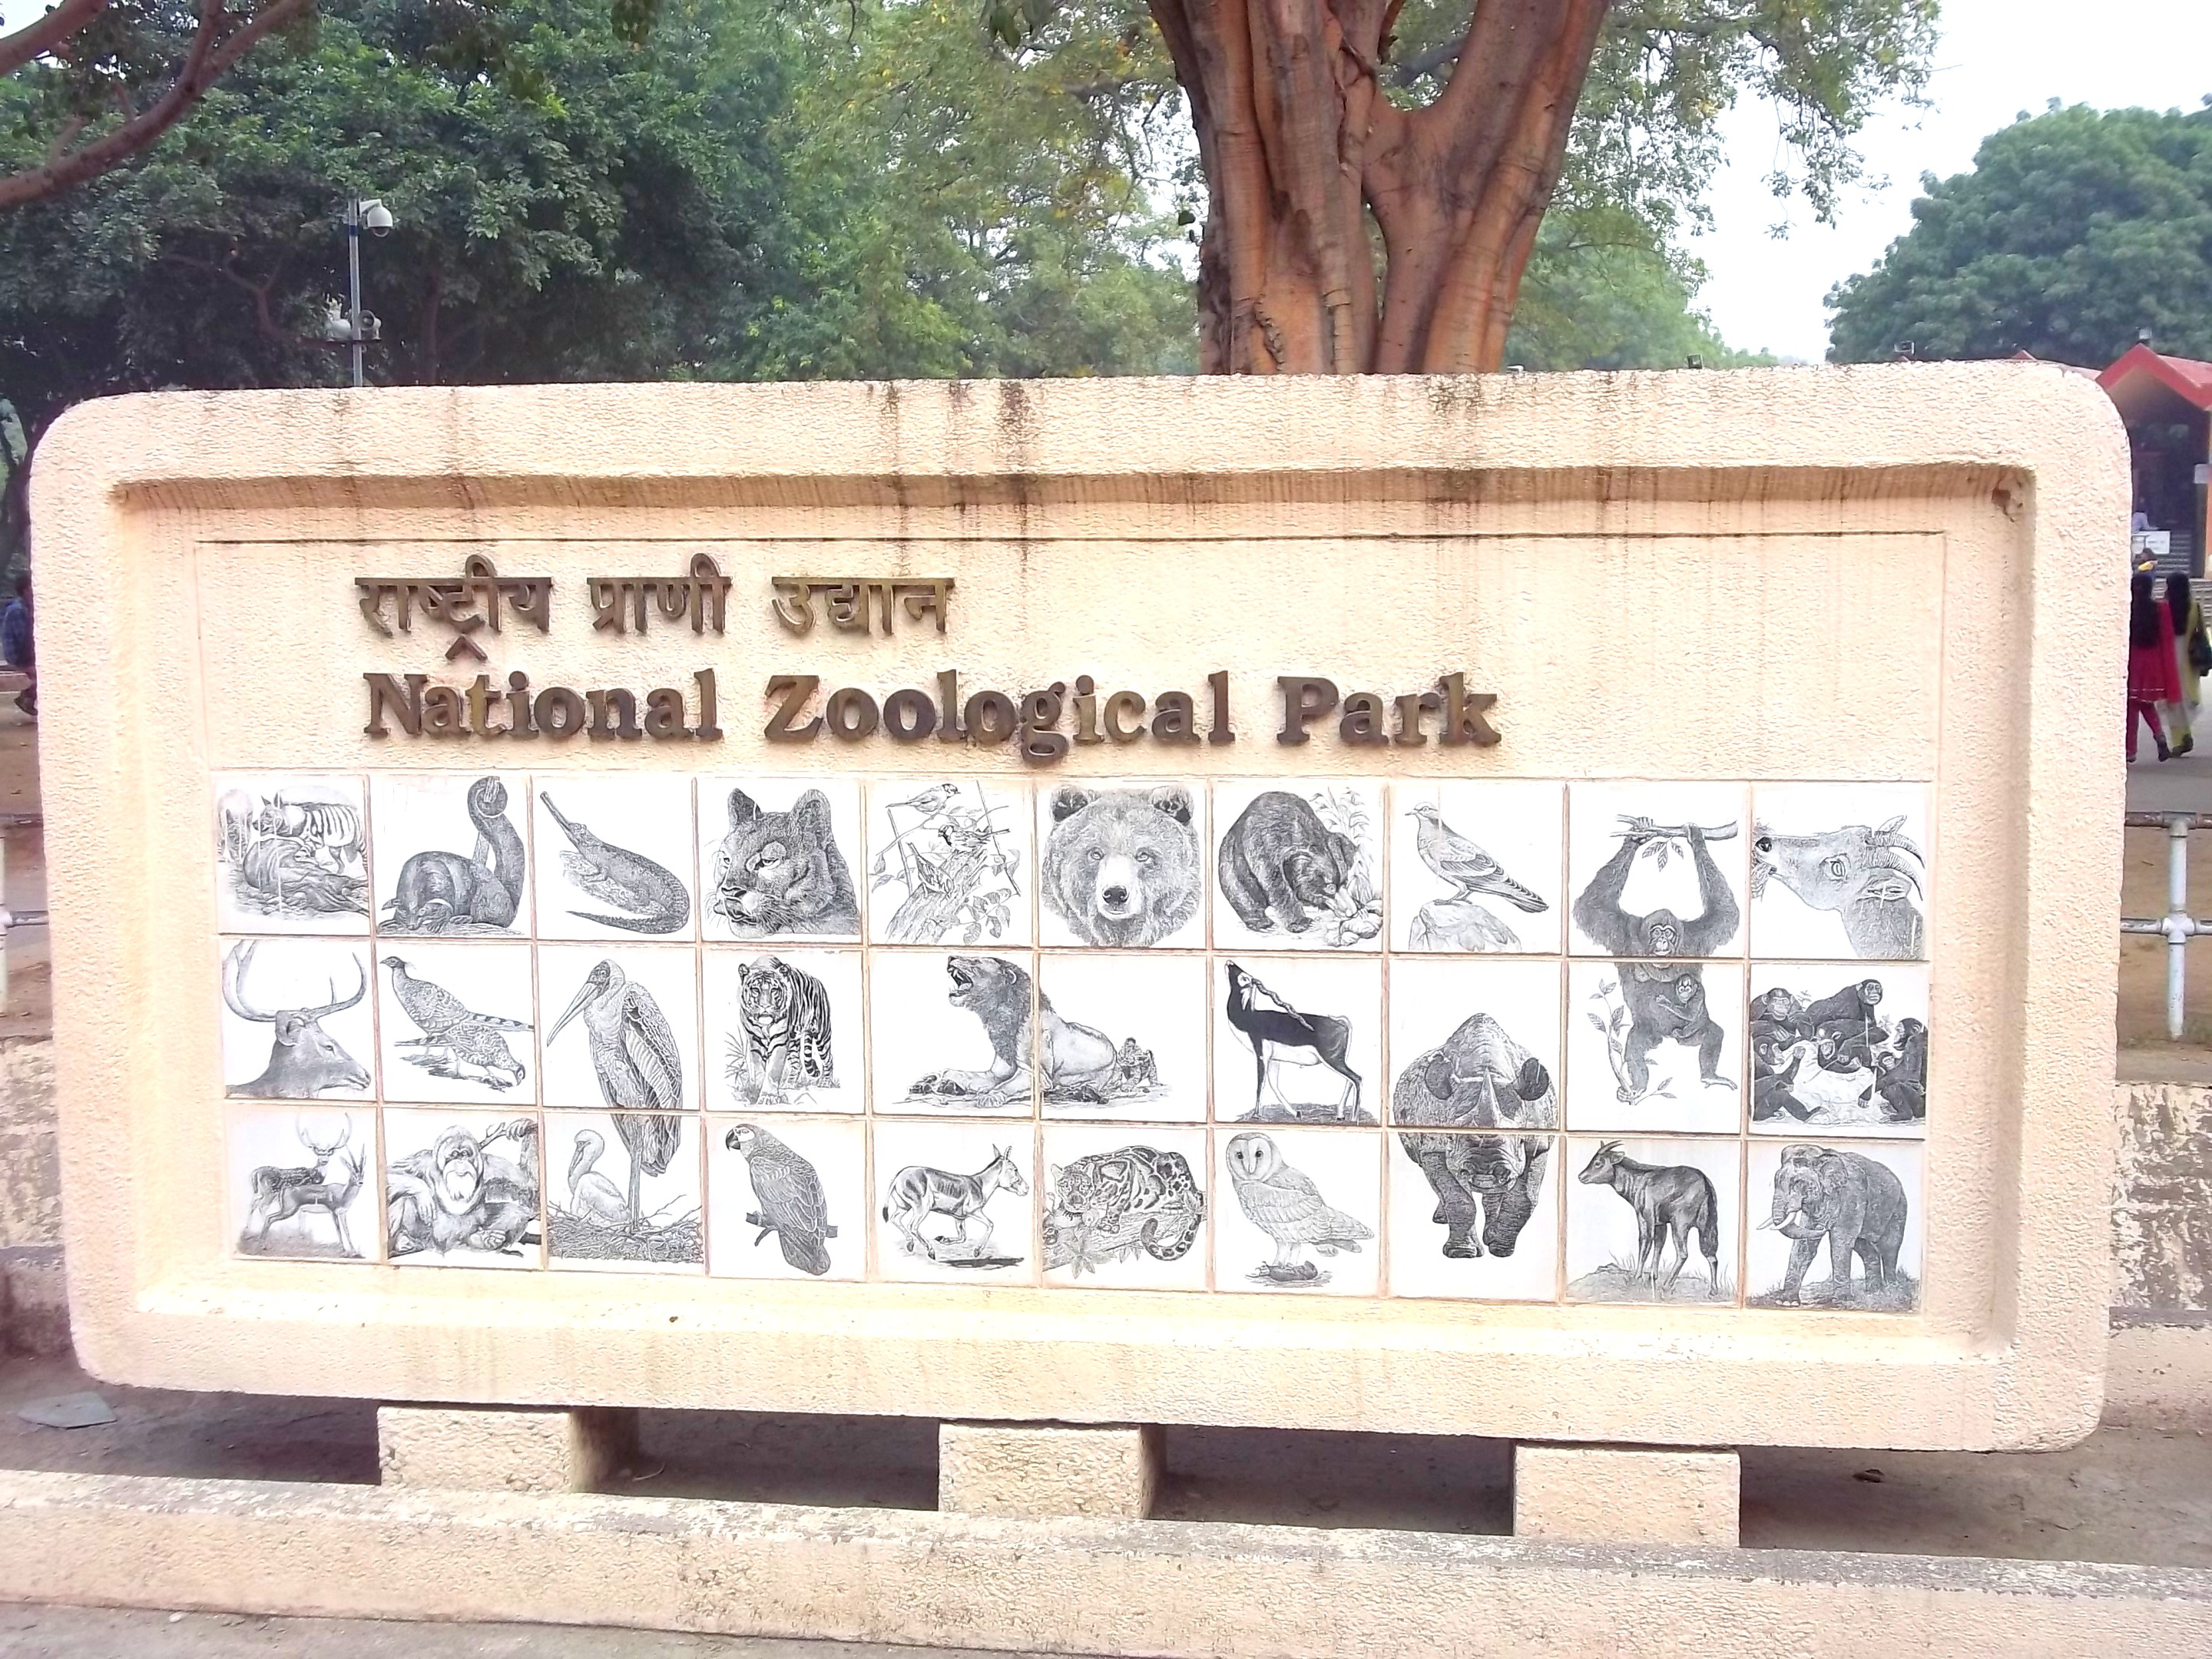 National Zoological Gardens Delhi, national zoological park delhi | Manthan Diary